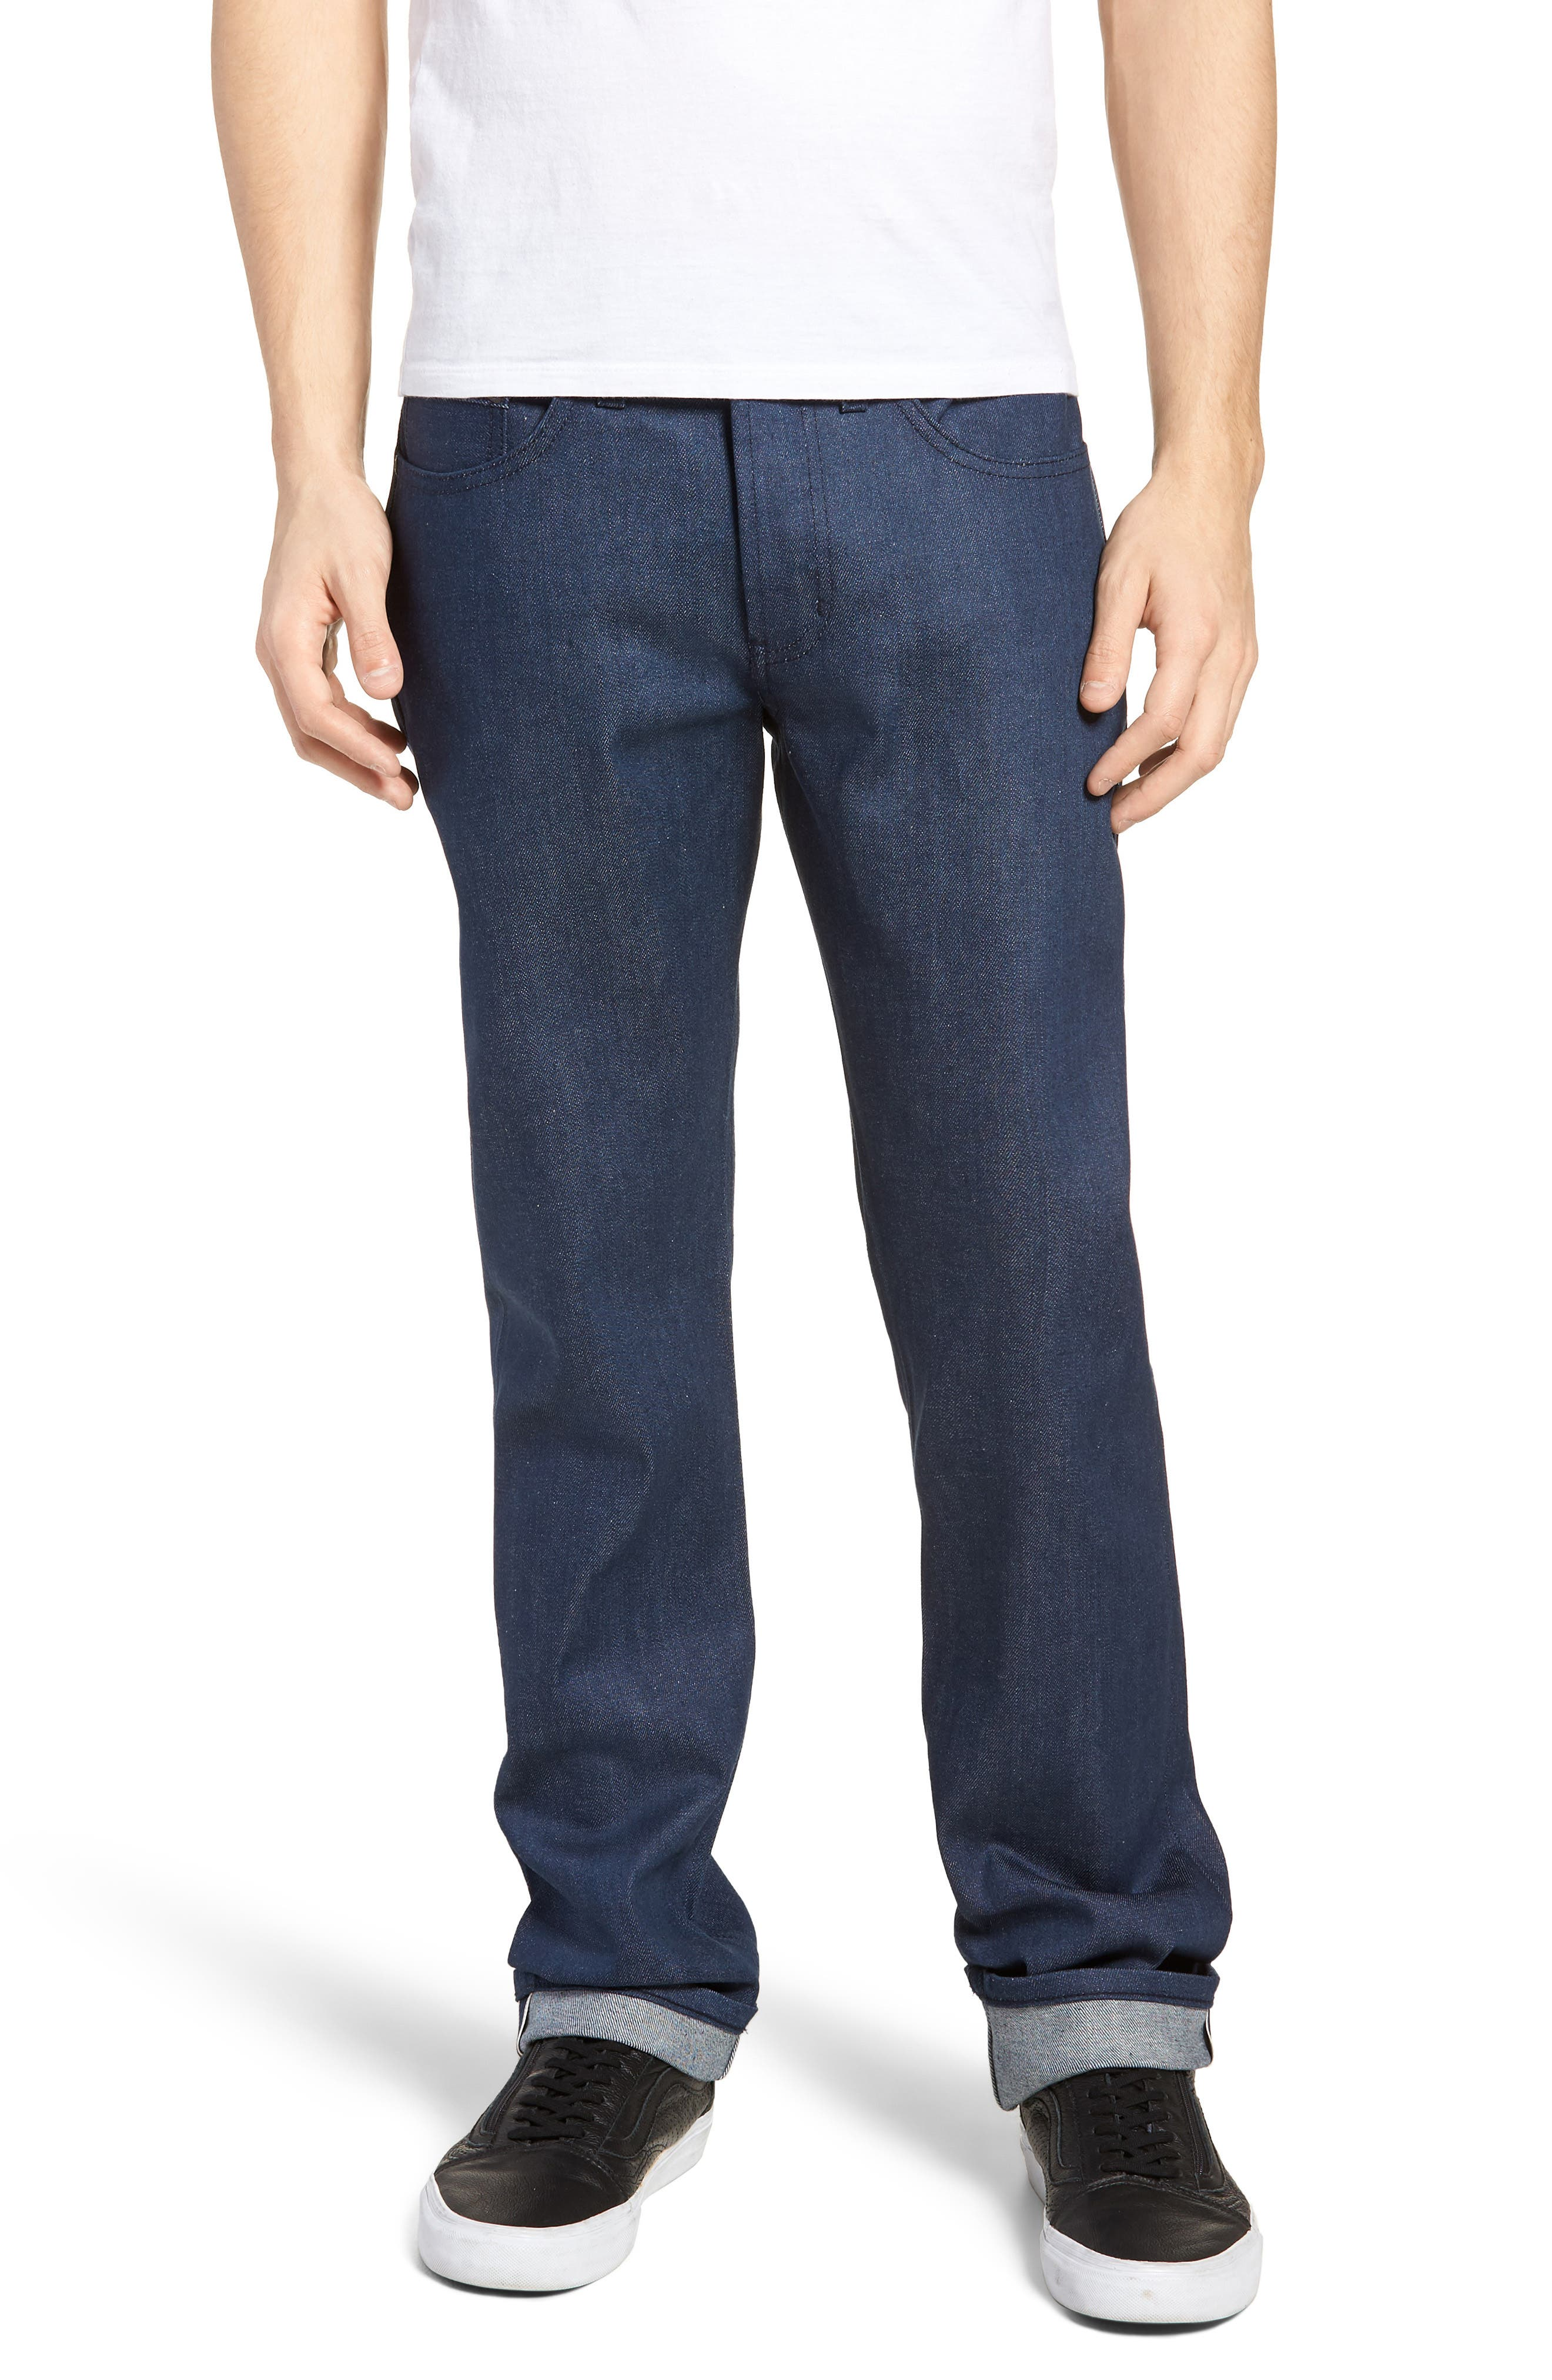 Naked & Famous Denim Weird Guy Slim Fit Jeans (Workman's Blue)